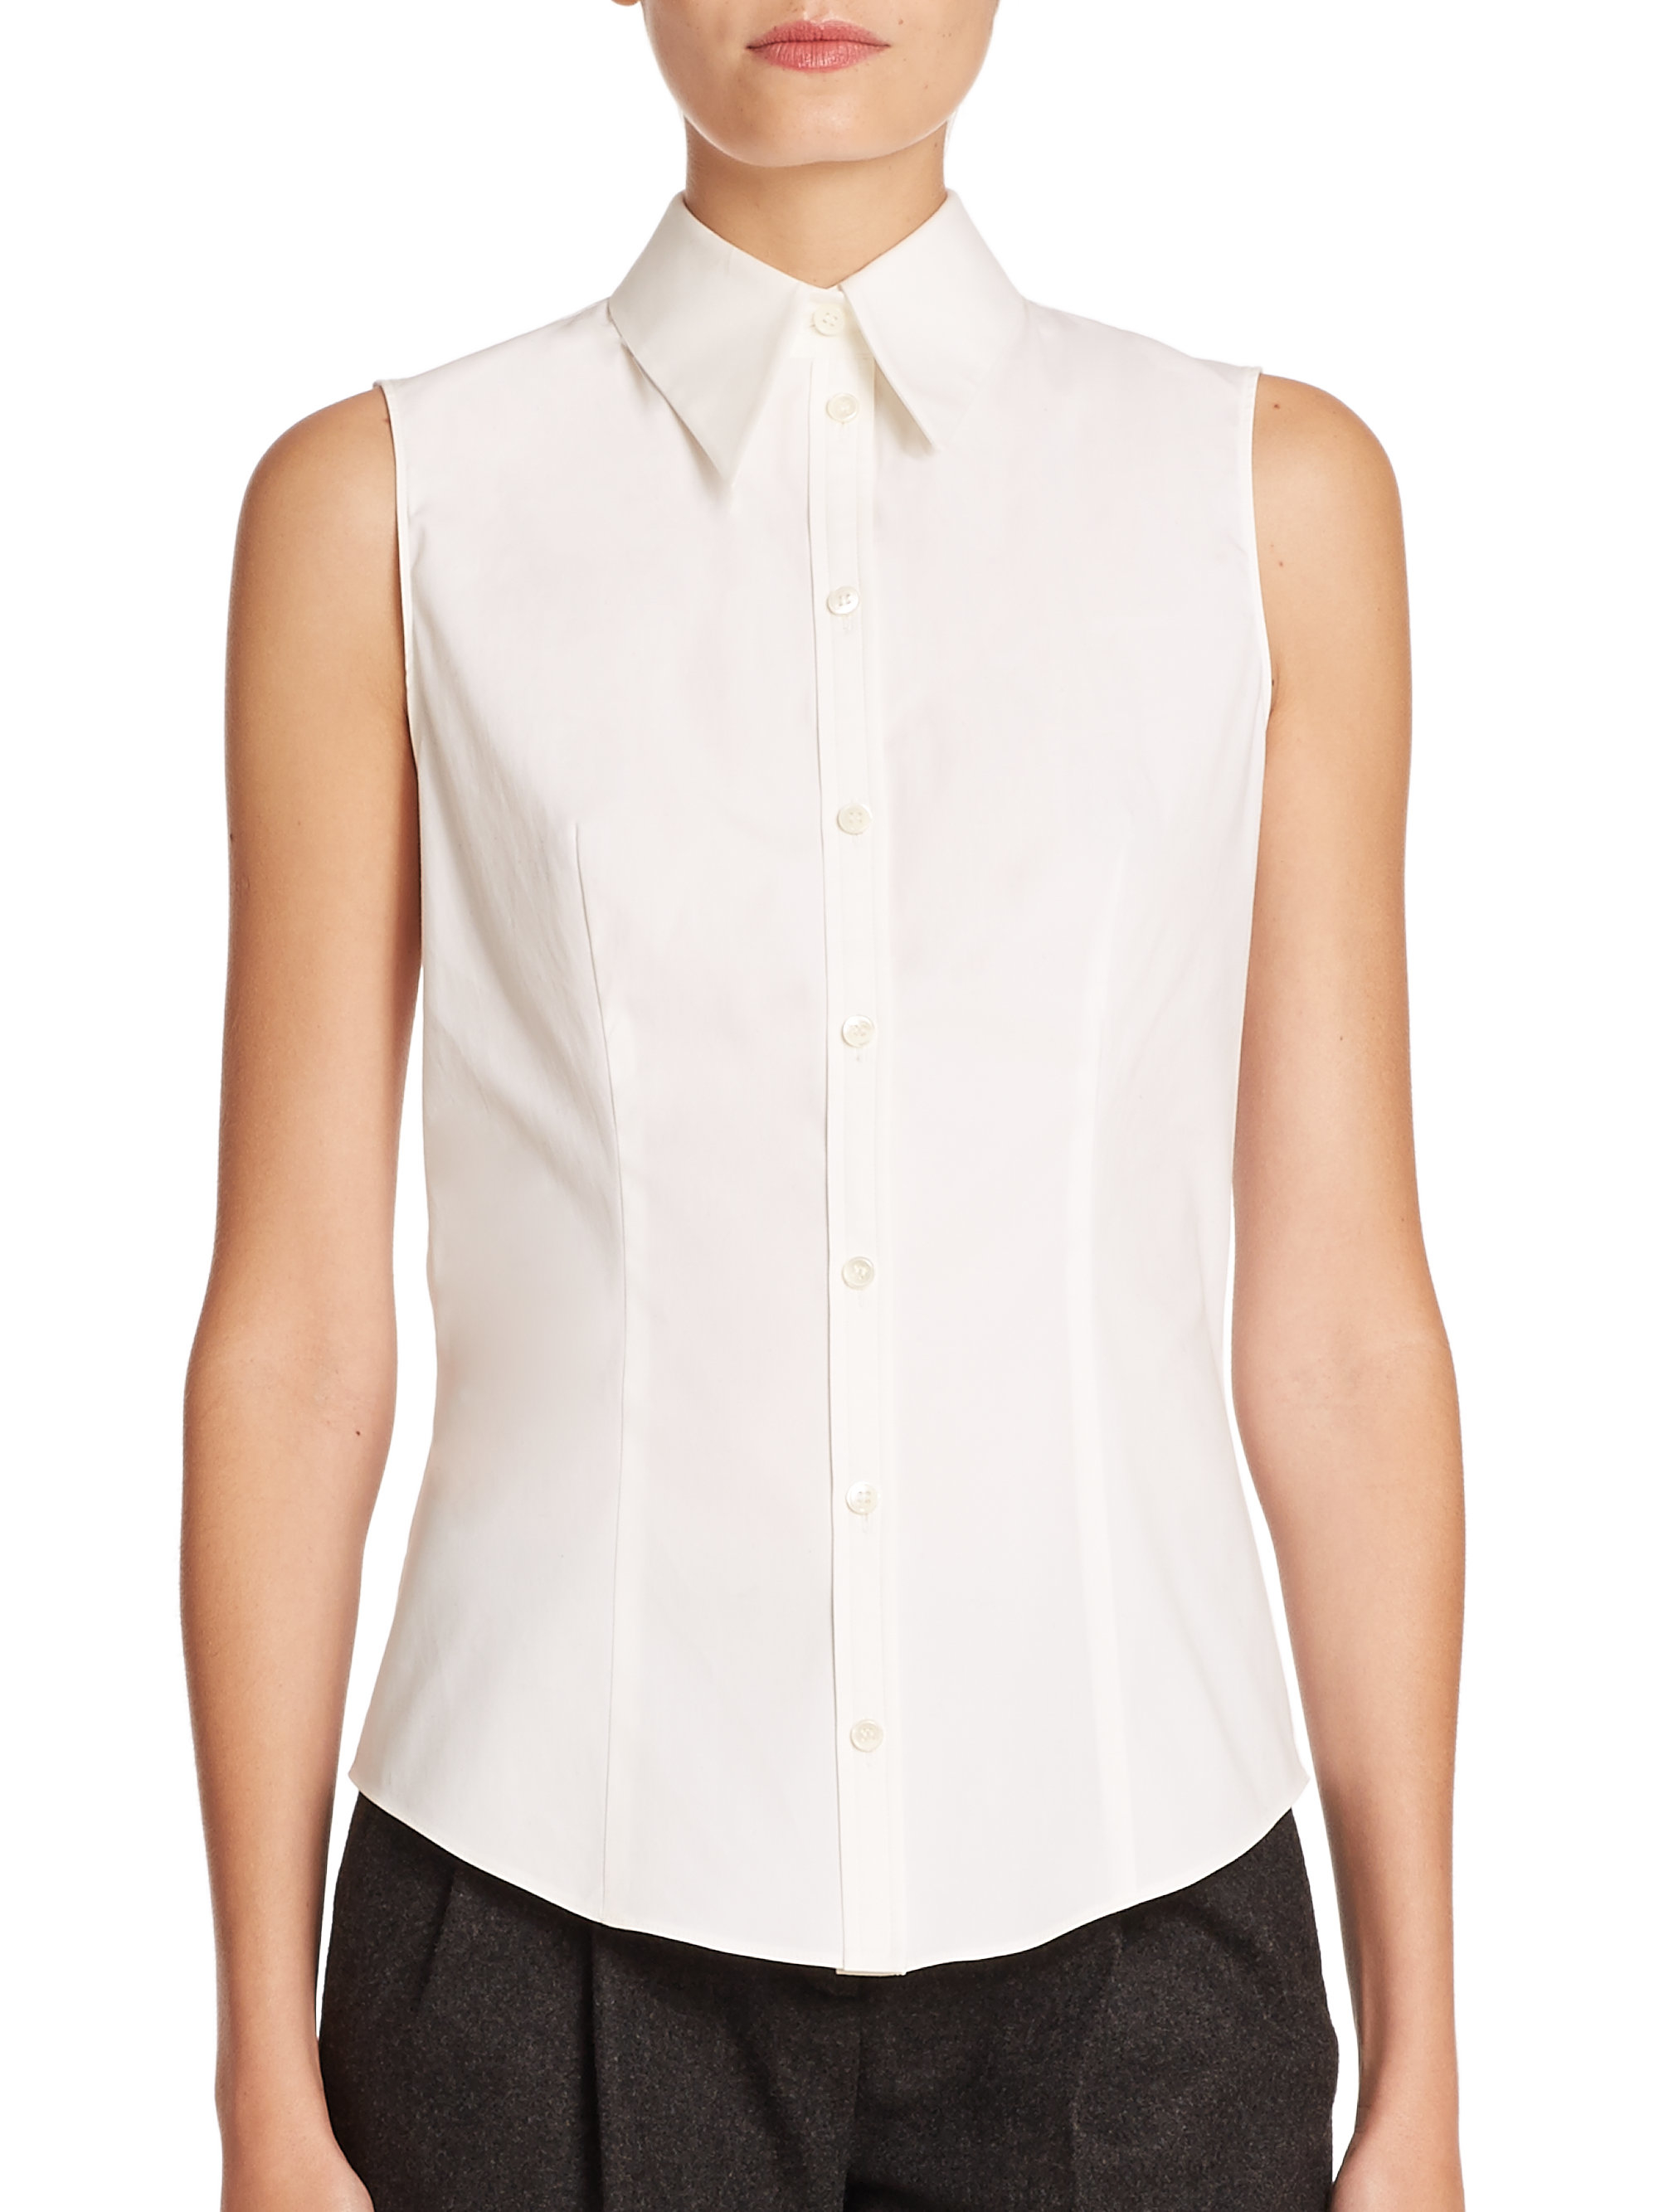 lyst michael kors stretch cotton poplin shirt in white. Black Bedroom Furniture Sets. Home Design Ideas